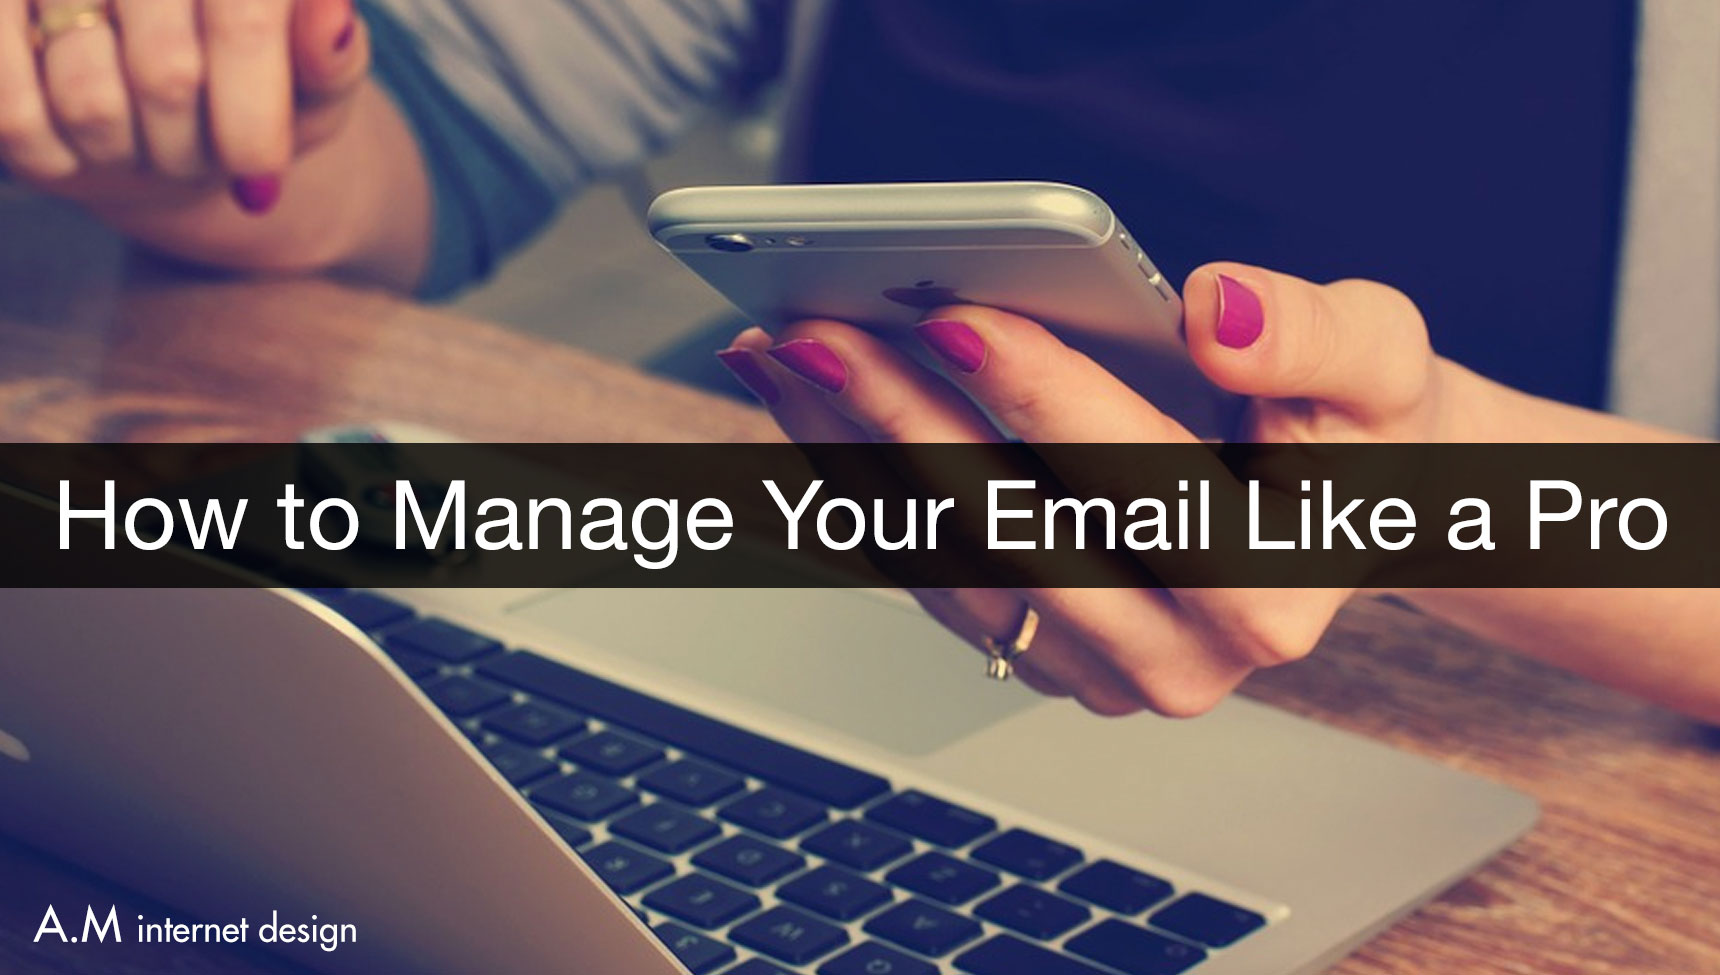 How to manage your email like a pro